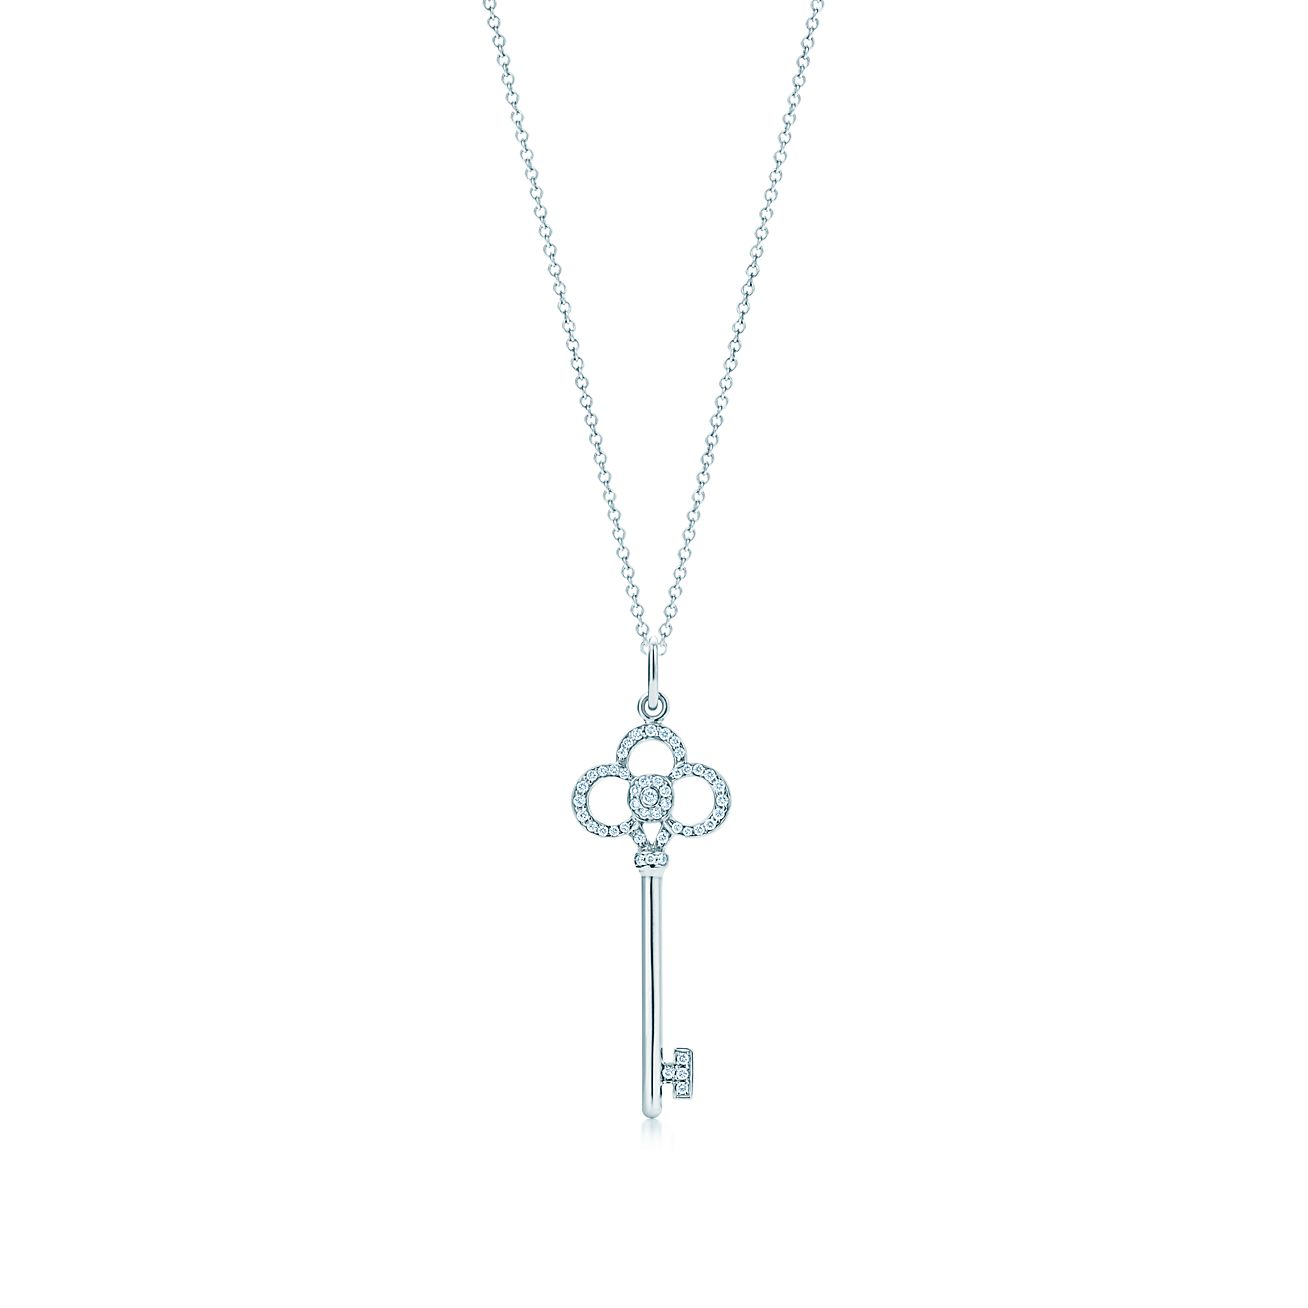 Tiffany Keys Crown Key Diamond Pendant In 18k White Gold Tiffany Co